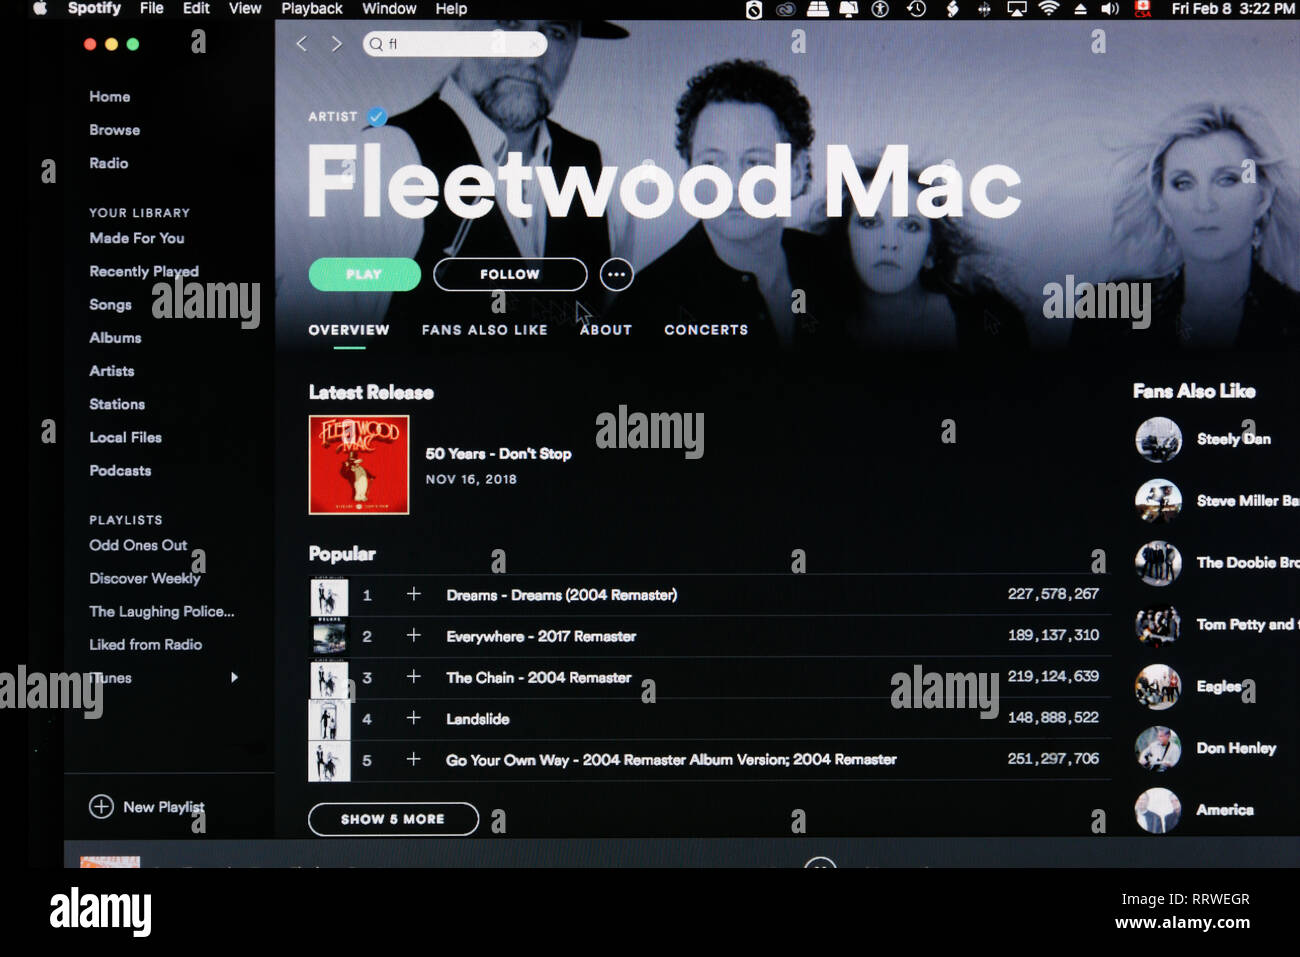 Fleetwood Mac Spotify home page Photo Stock